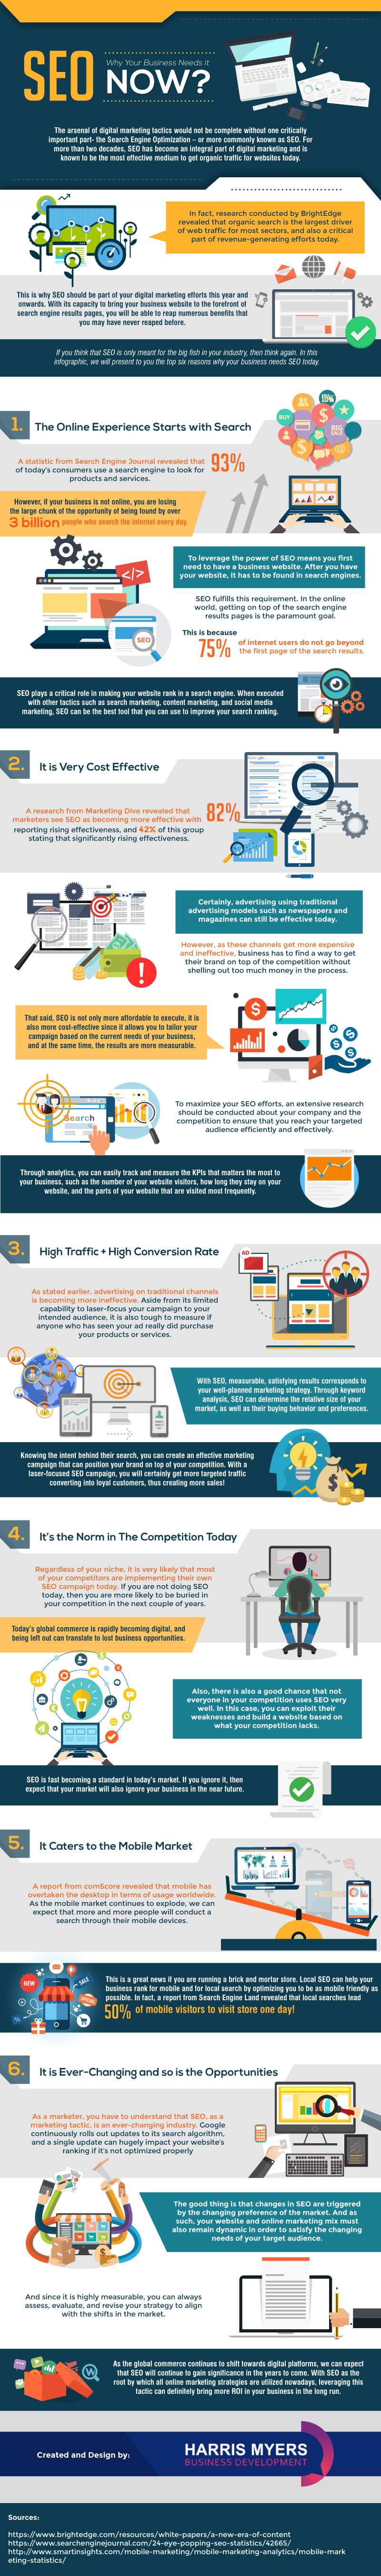 SEO: Why Your Business Needs it NOW? - #Infographic